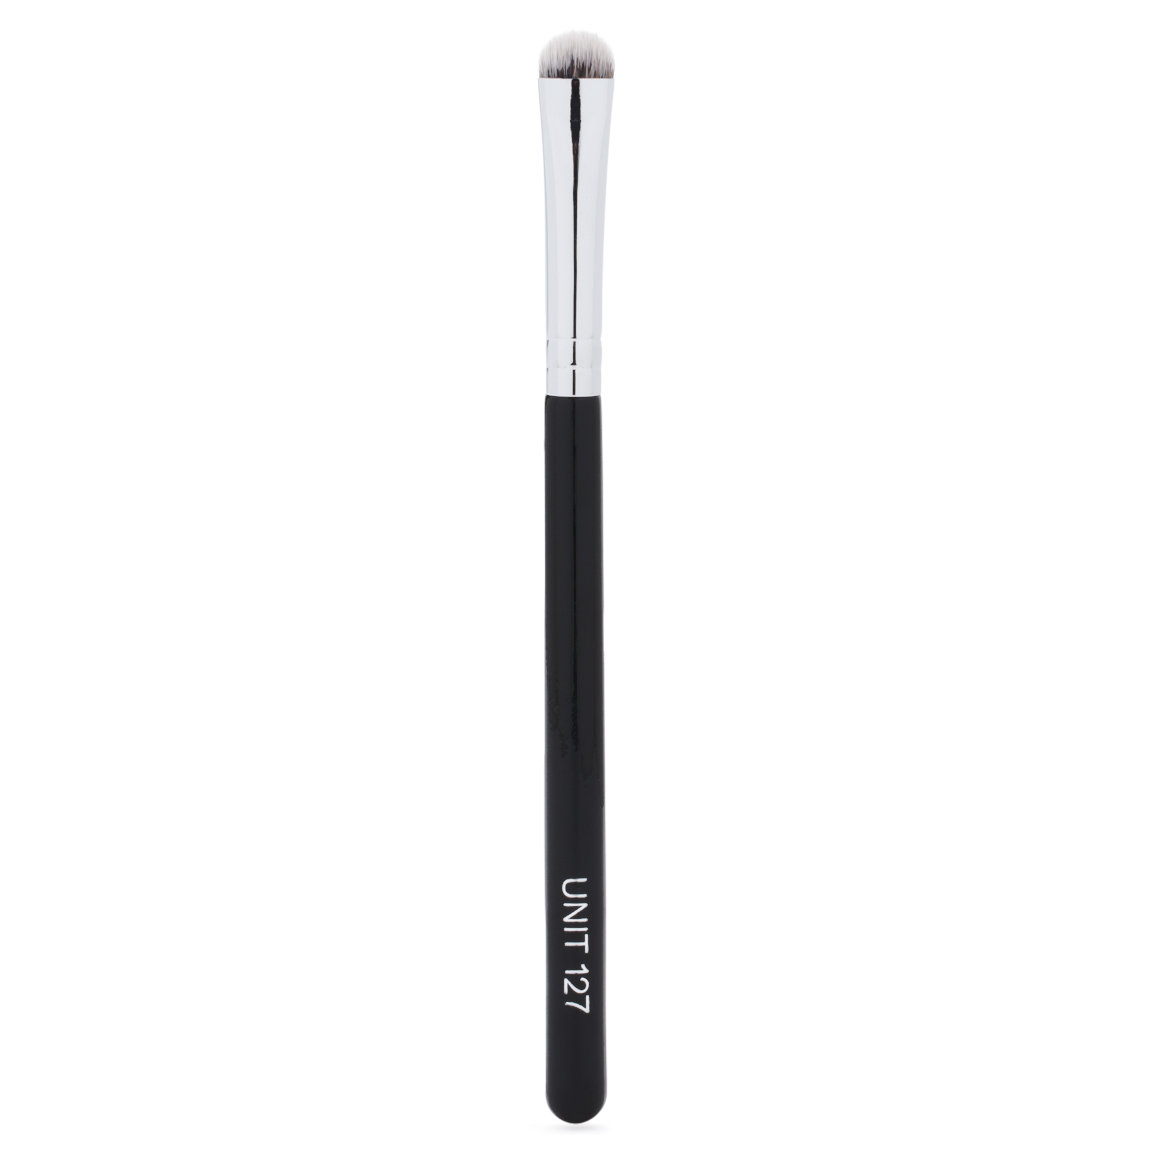 UNIT 127 Eye Brush